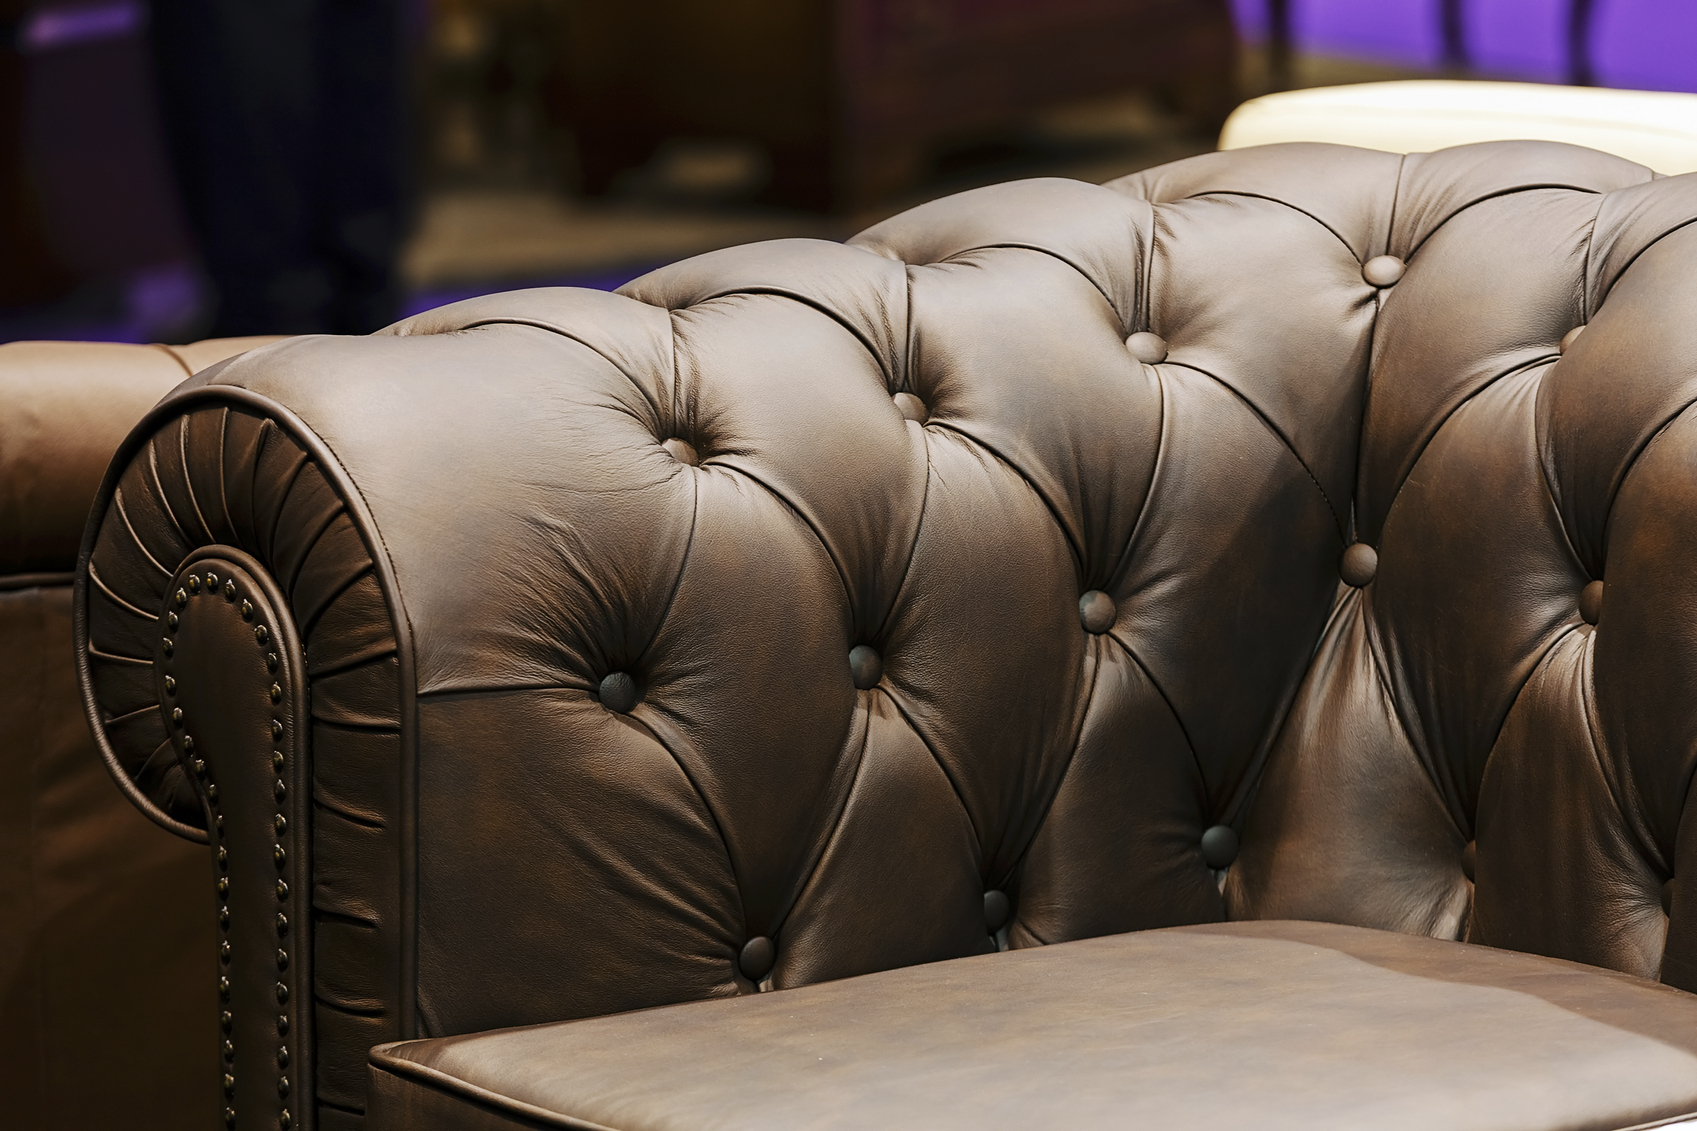 Tips For Buying And Selling Used Ethan Allen Furniture Lovetoknow 1,624 furniture dayton ohio products are offered for sale by suppliers on alibaba.com. https furniture lovetoknow com used ethan allen furniture